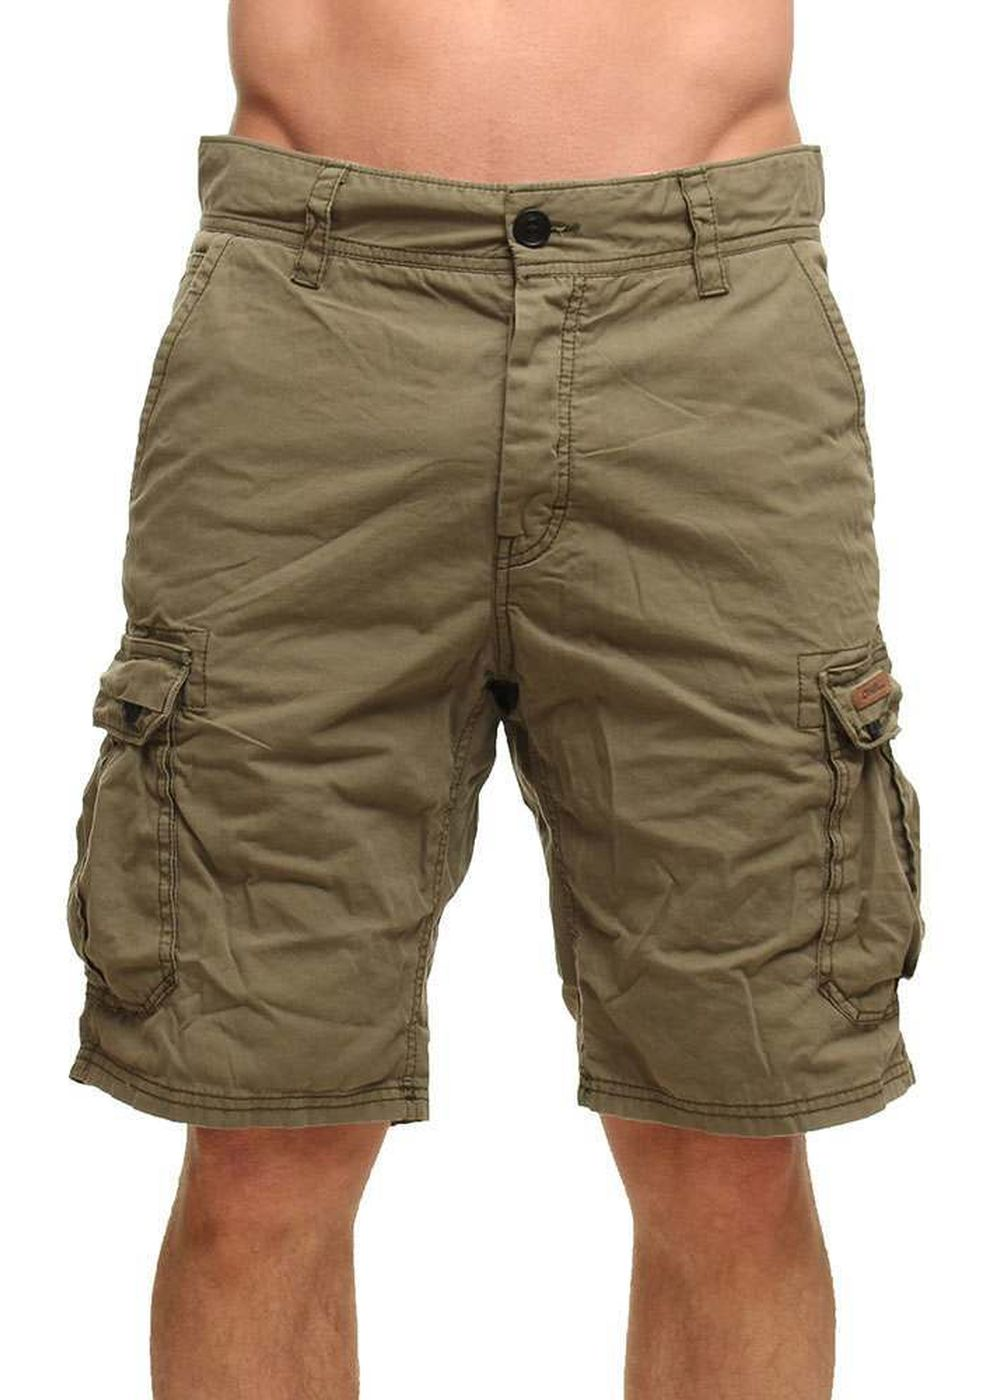 ONEILL COMPLEX CARGO SHORTS Burnt Olive